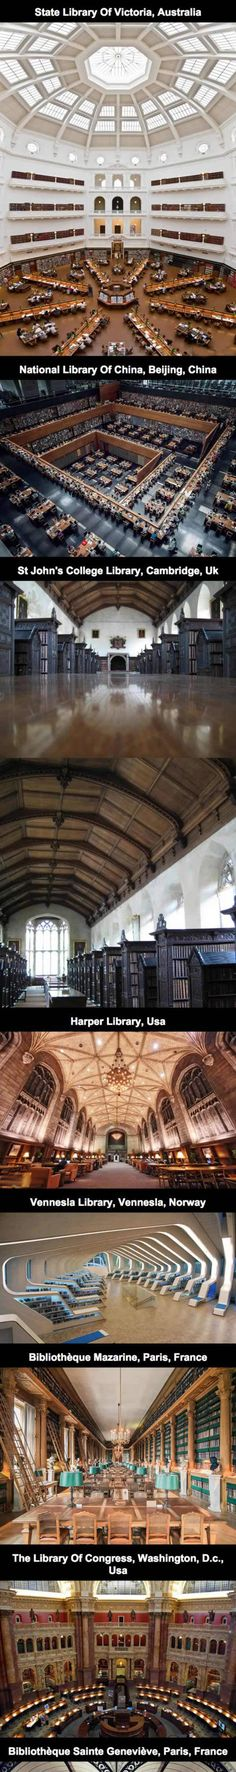 The Most Amazing Libraries In The World aka Heaven on Earth